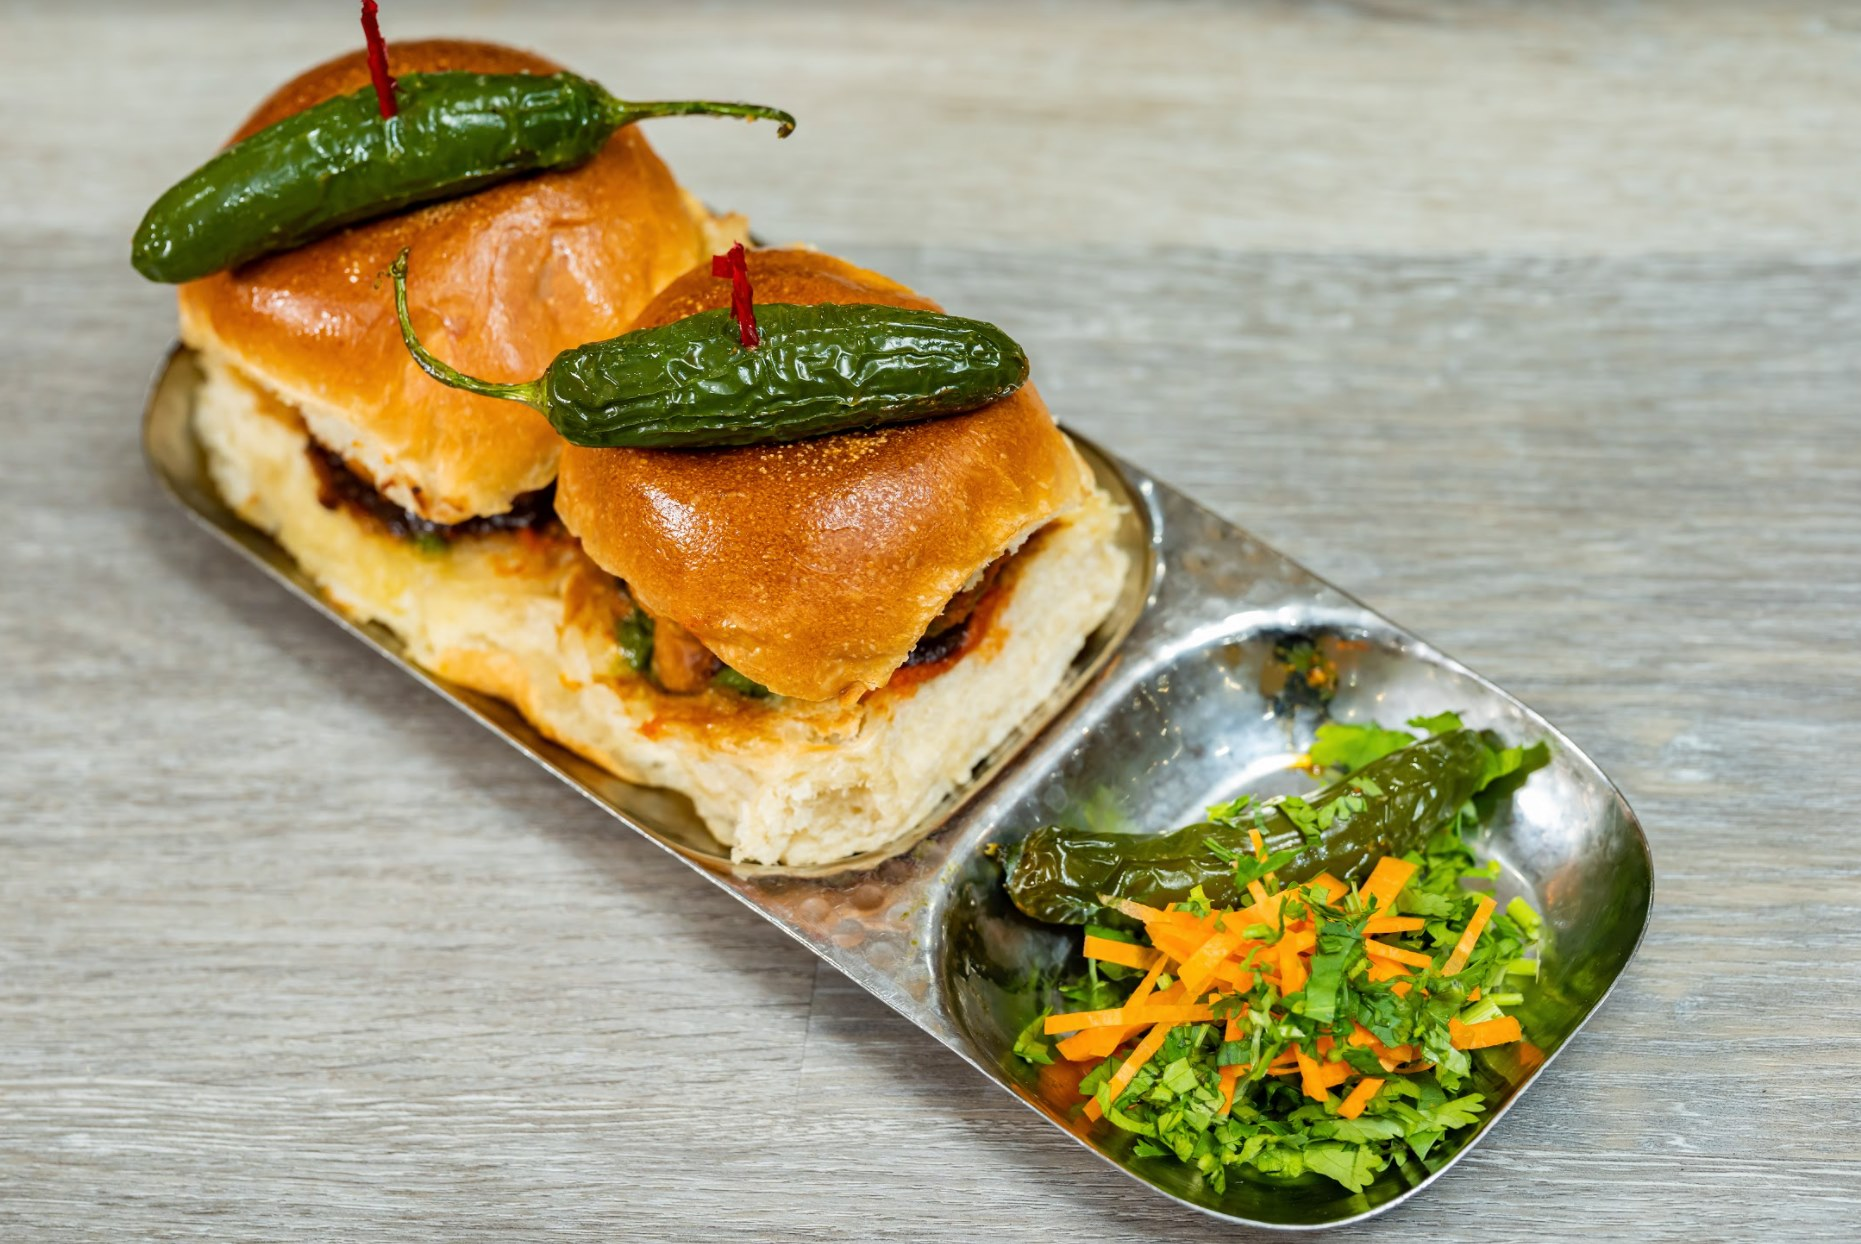 two deep-fried potato patty's coated is served sandwiched between a soft bread bun with tangy tamarind chutney and spicy coriander chutney